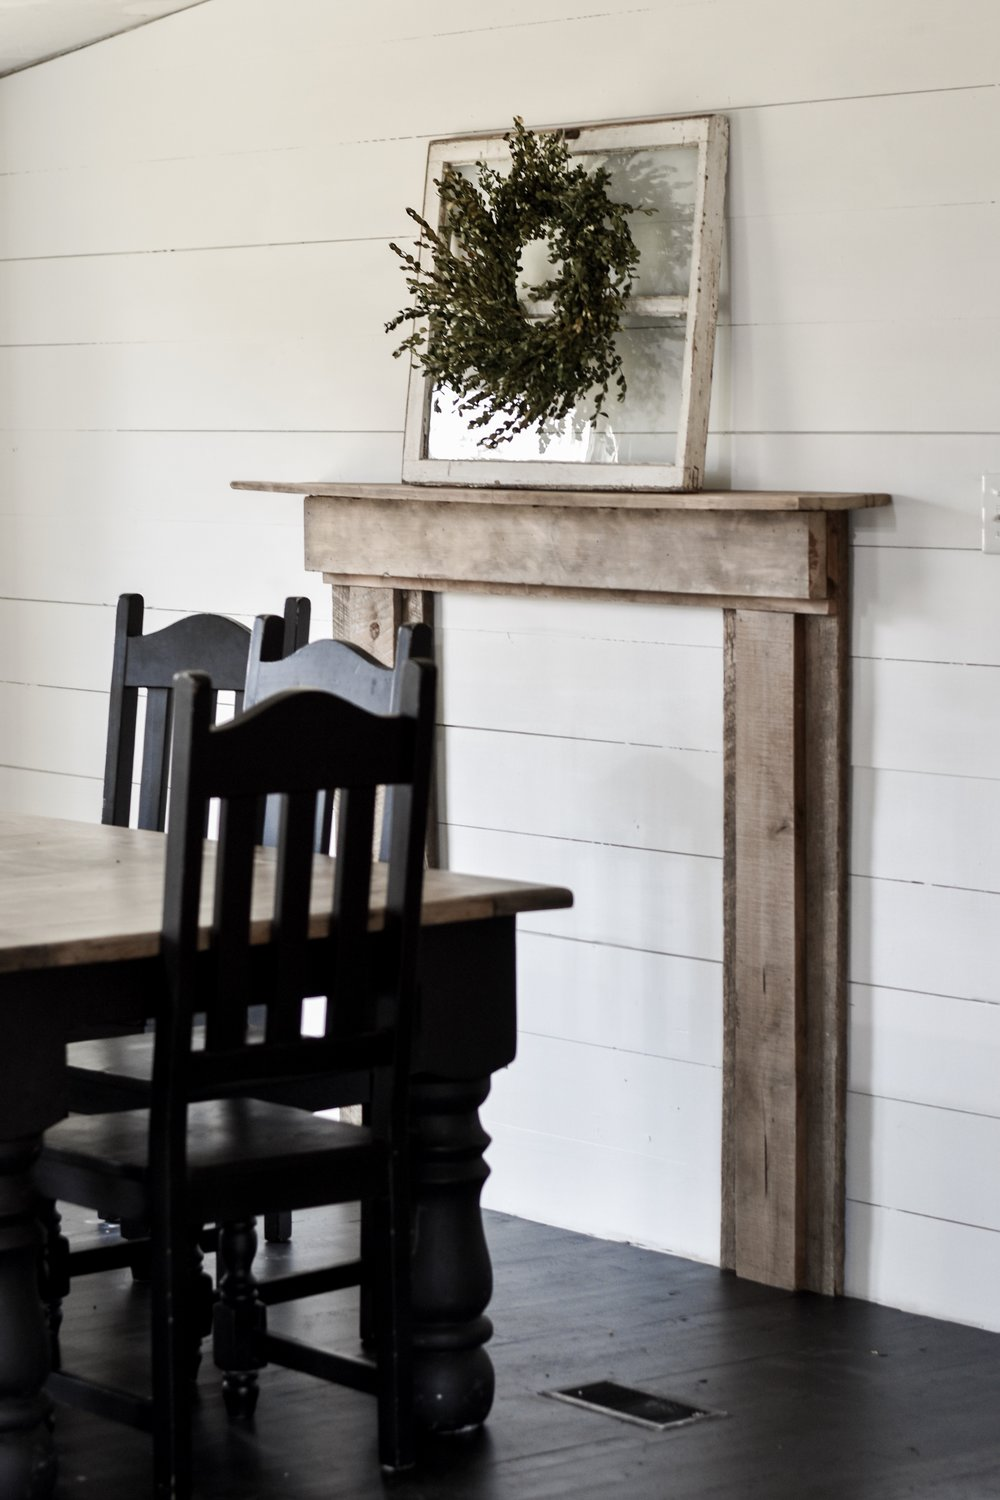 Build a faux mantel and fireplace with gathered barn wood to create a rustic farmhouse feel in your home. | Rocky Hedge Farm